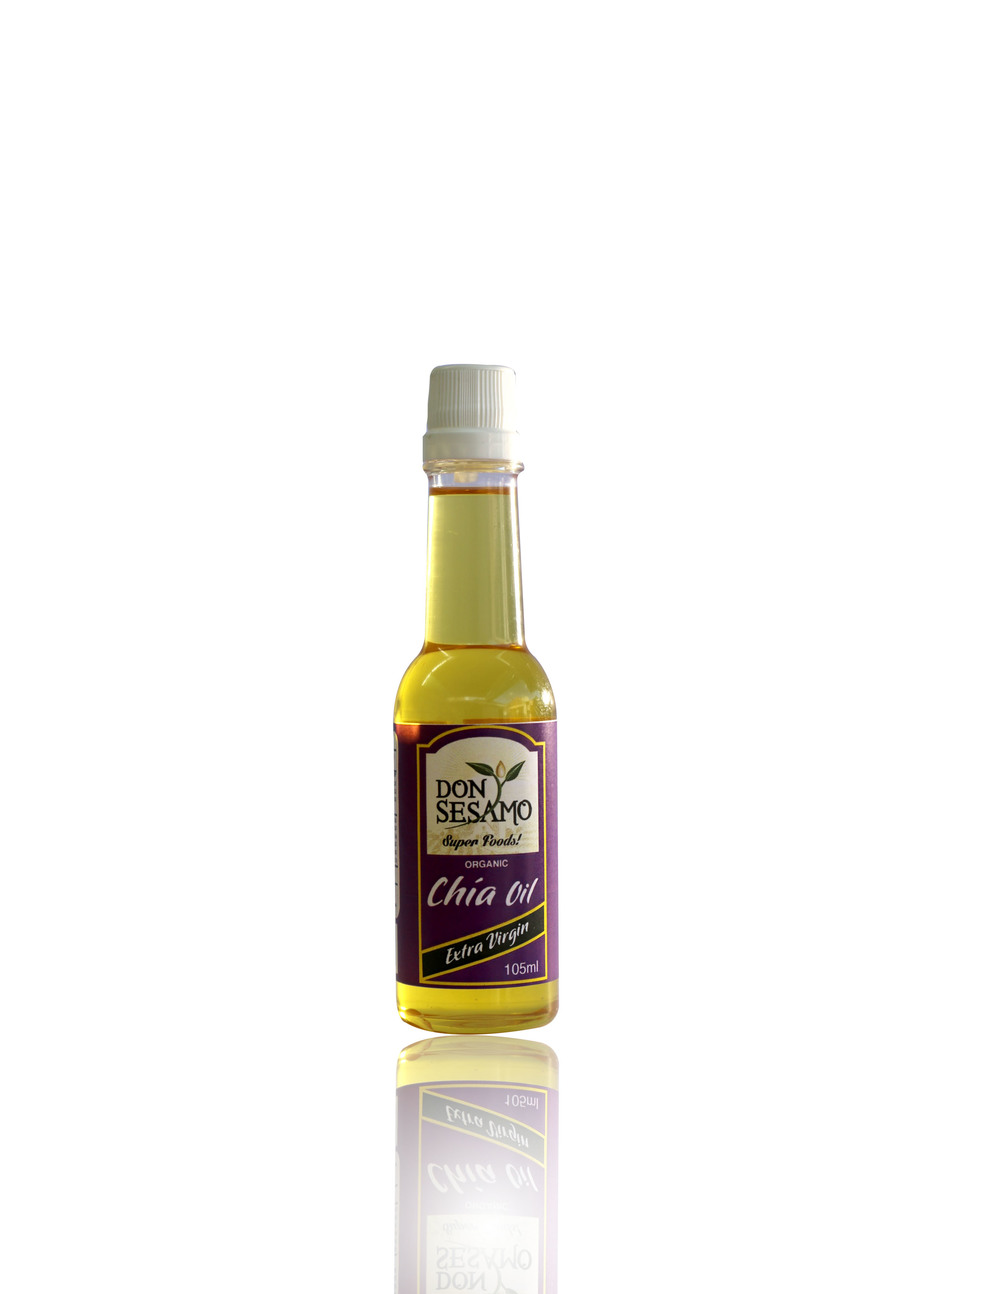 CHIA OIL 105 ML (3.55 fl. OZ.)